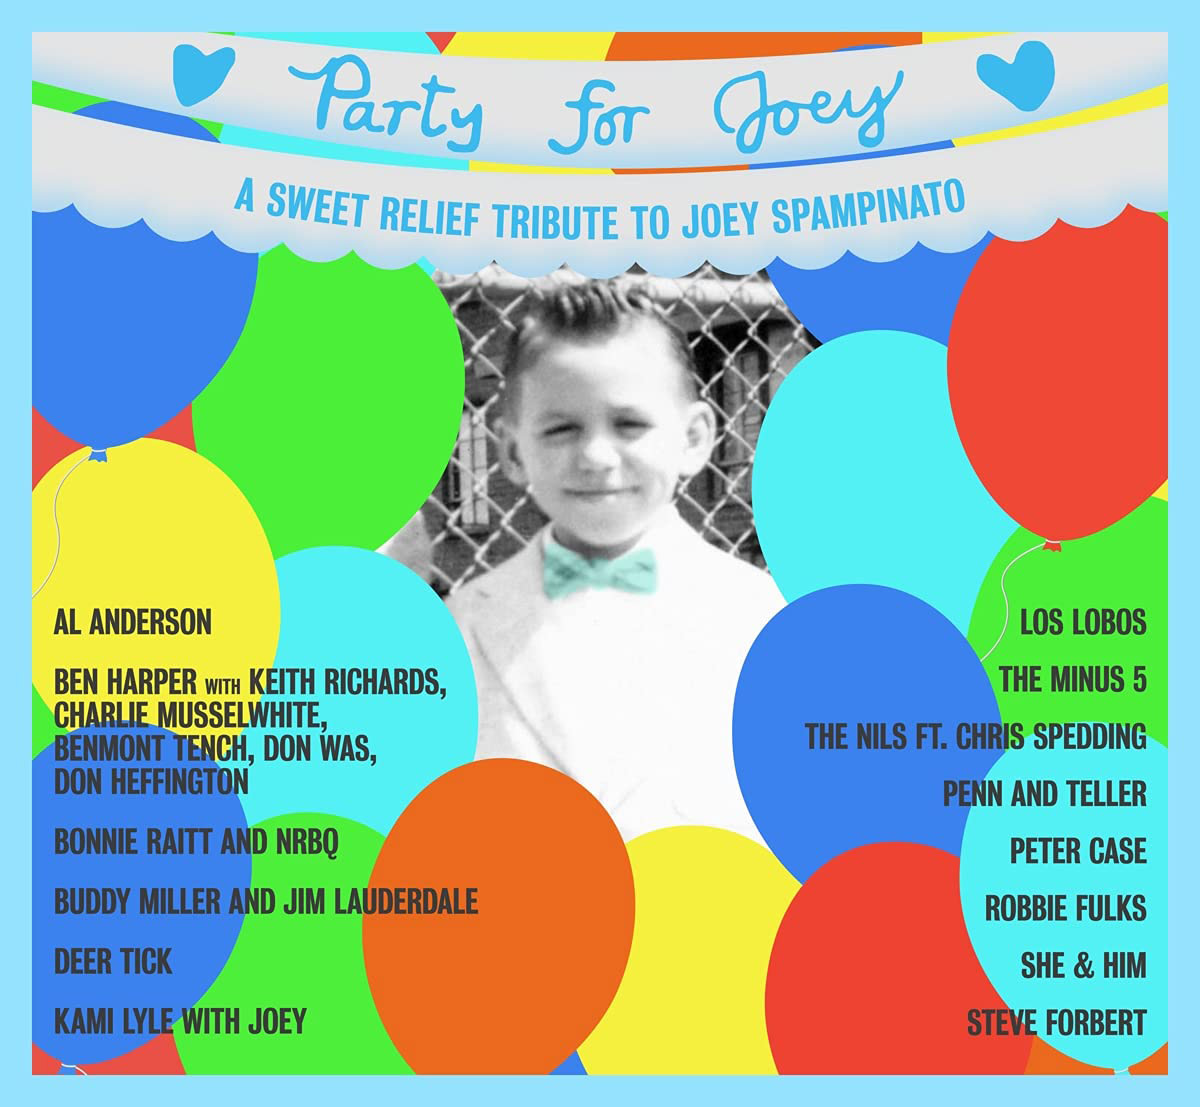 Party for Joey- A Sweet Relief Tribute to Joey Spampinato